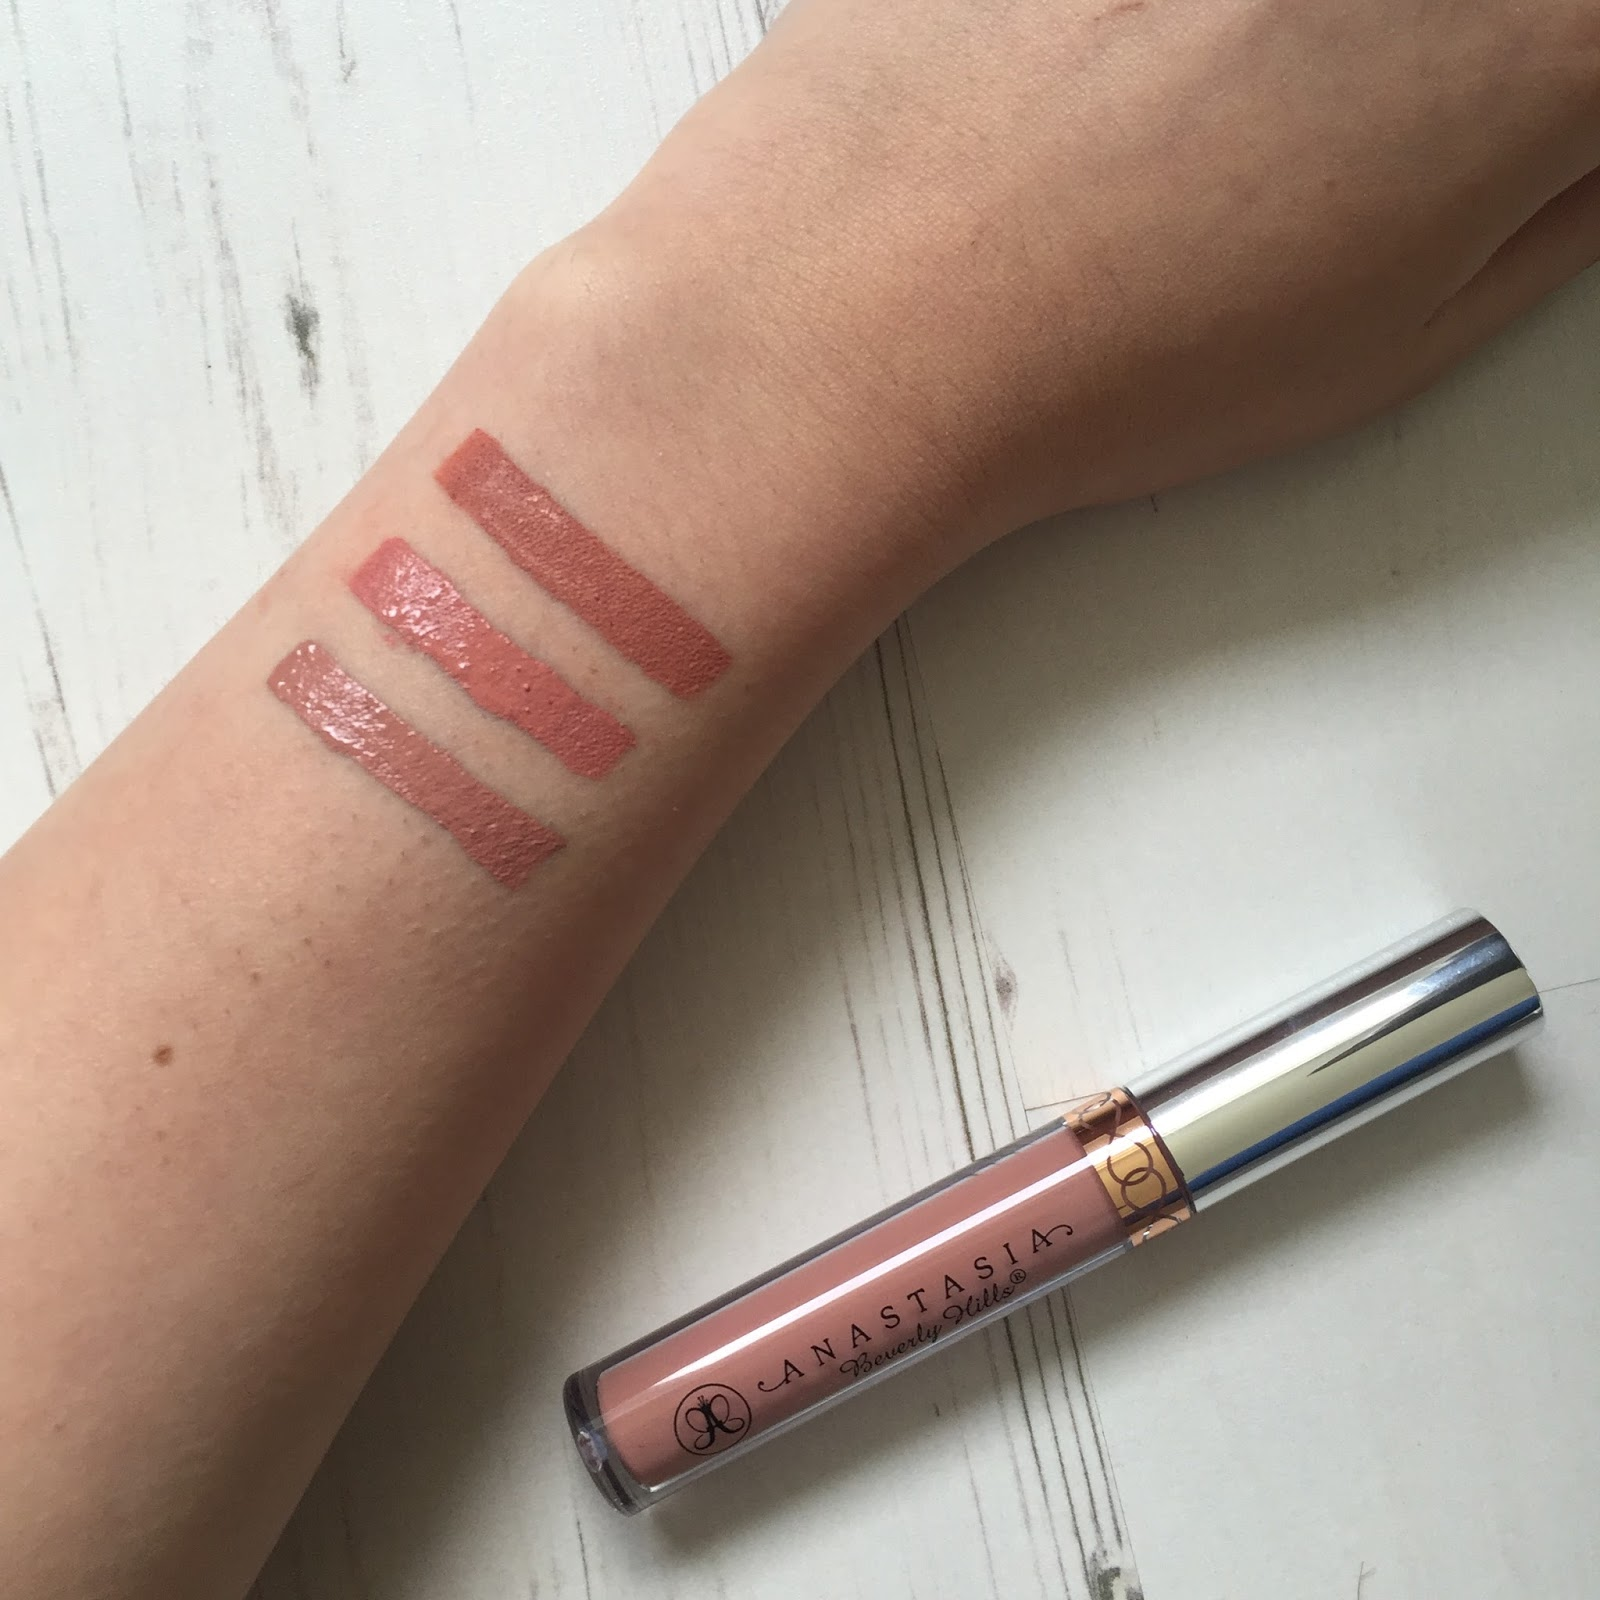 95fd1e340a This is my only Anastasia Beverley Hills liquid lipstick & it's in the  shade Pure Hollywood. I bought this for around £23 on Depop, you can't  actually get ...